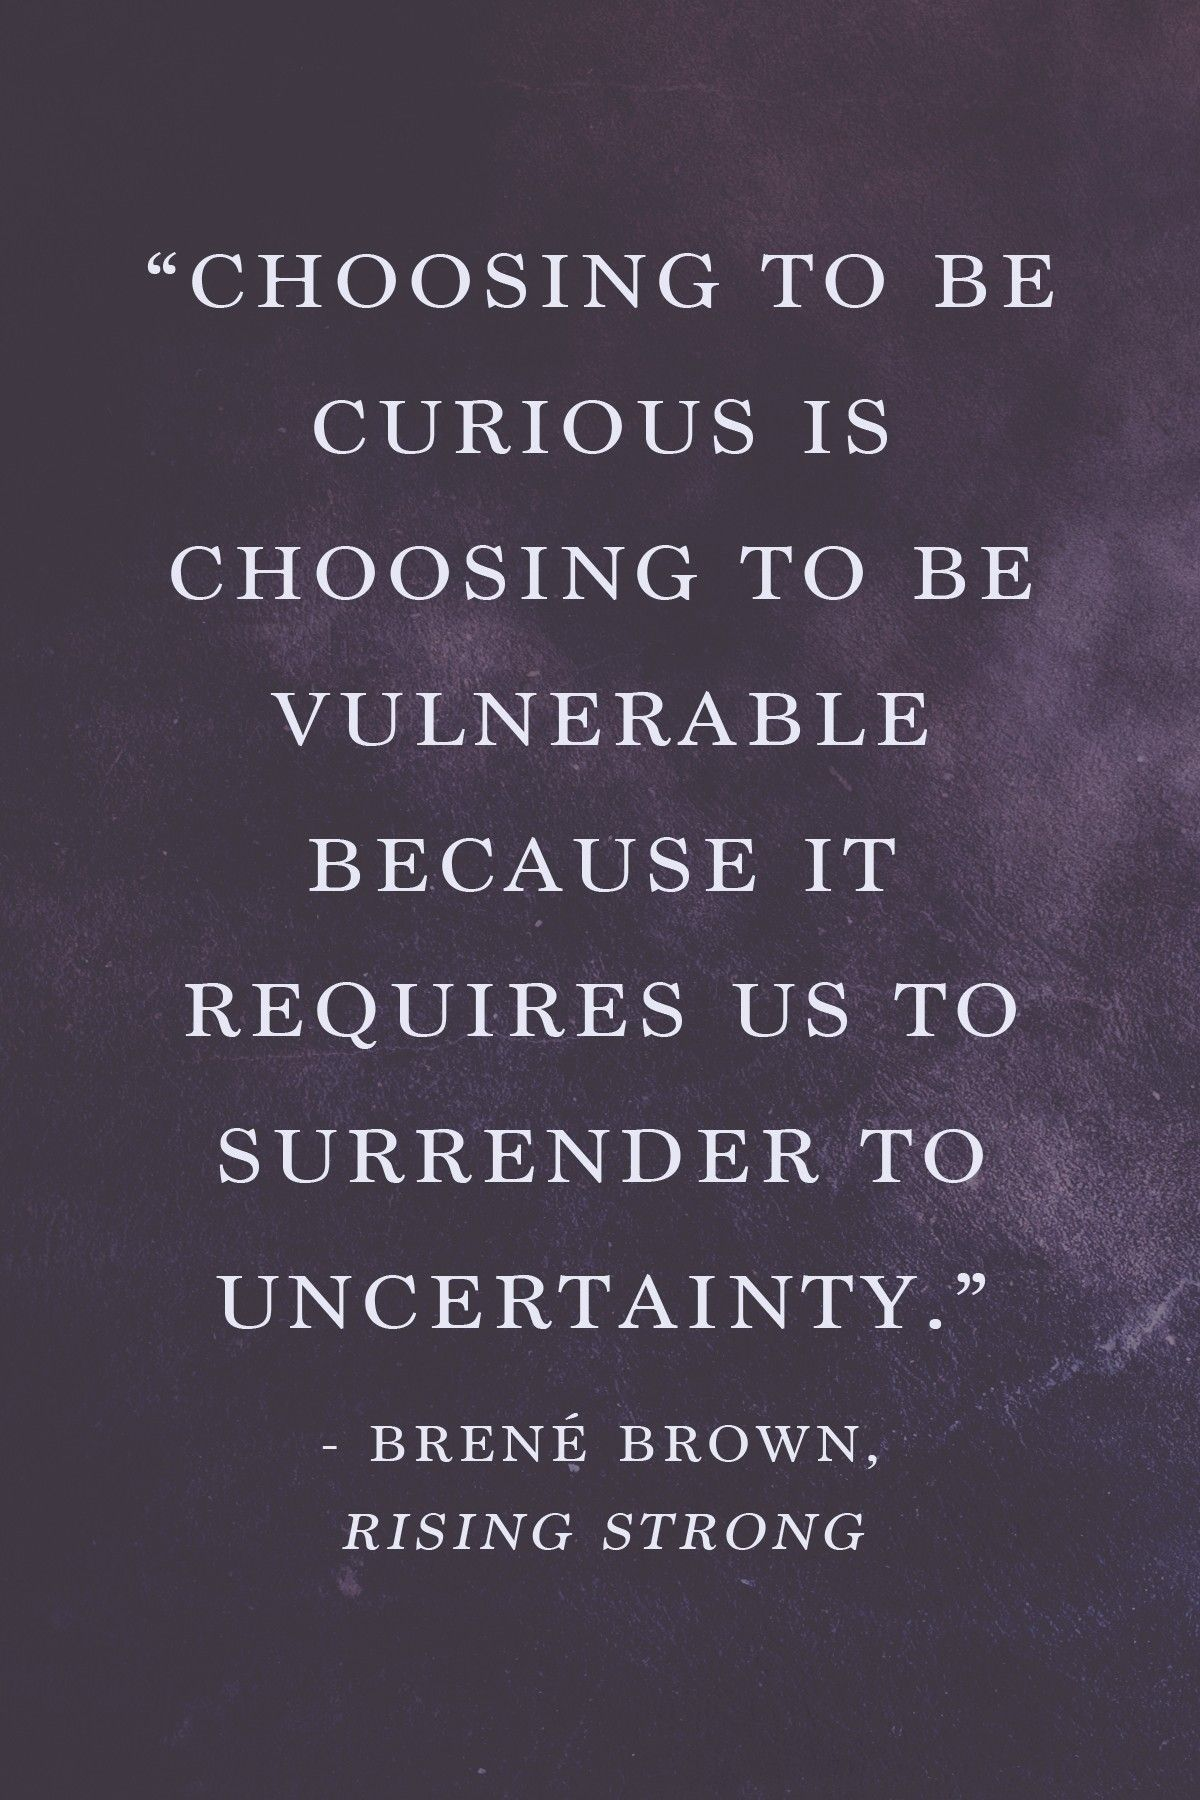 Pin By Christina P On Quotes Brene Brown Quotes Curiosity Quotes Words